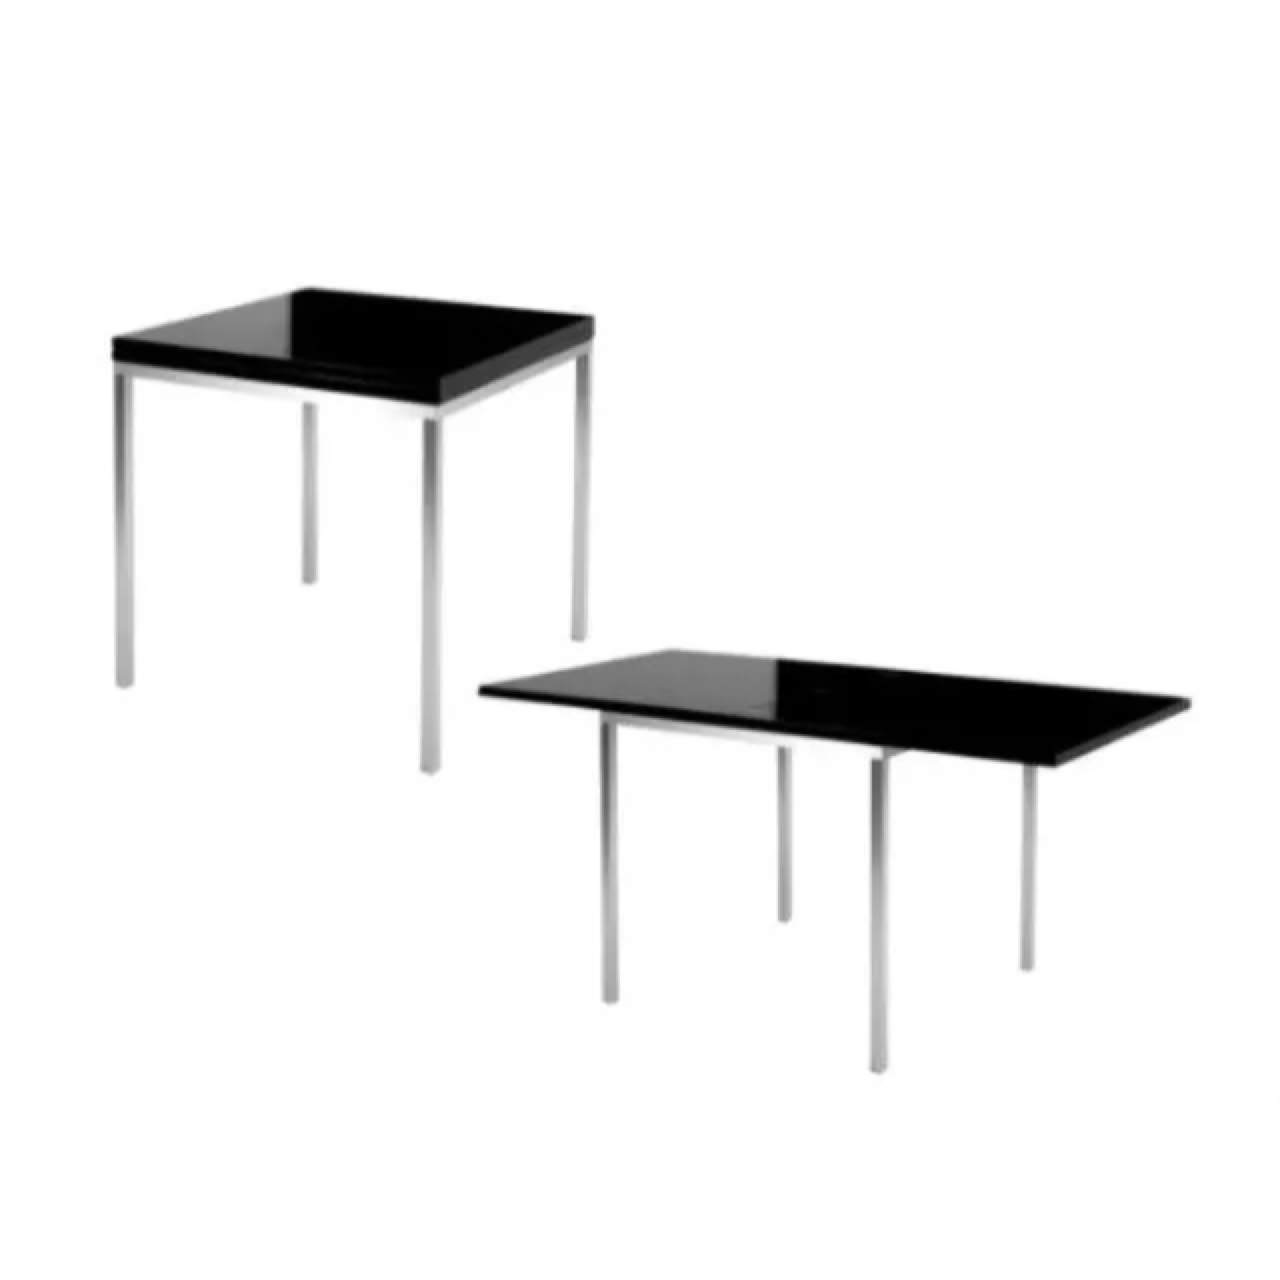 Dwell Dining Table Flick Extendable Dining Table Depop